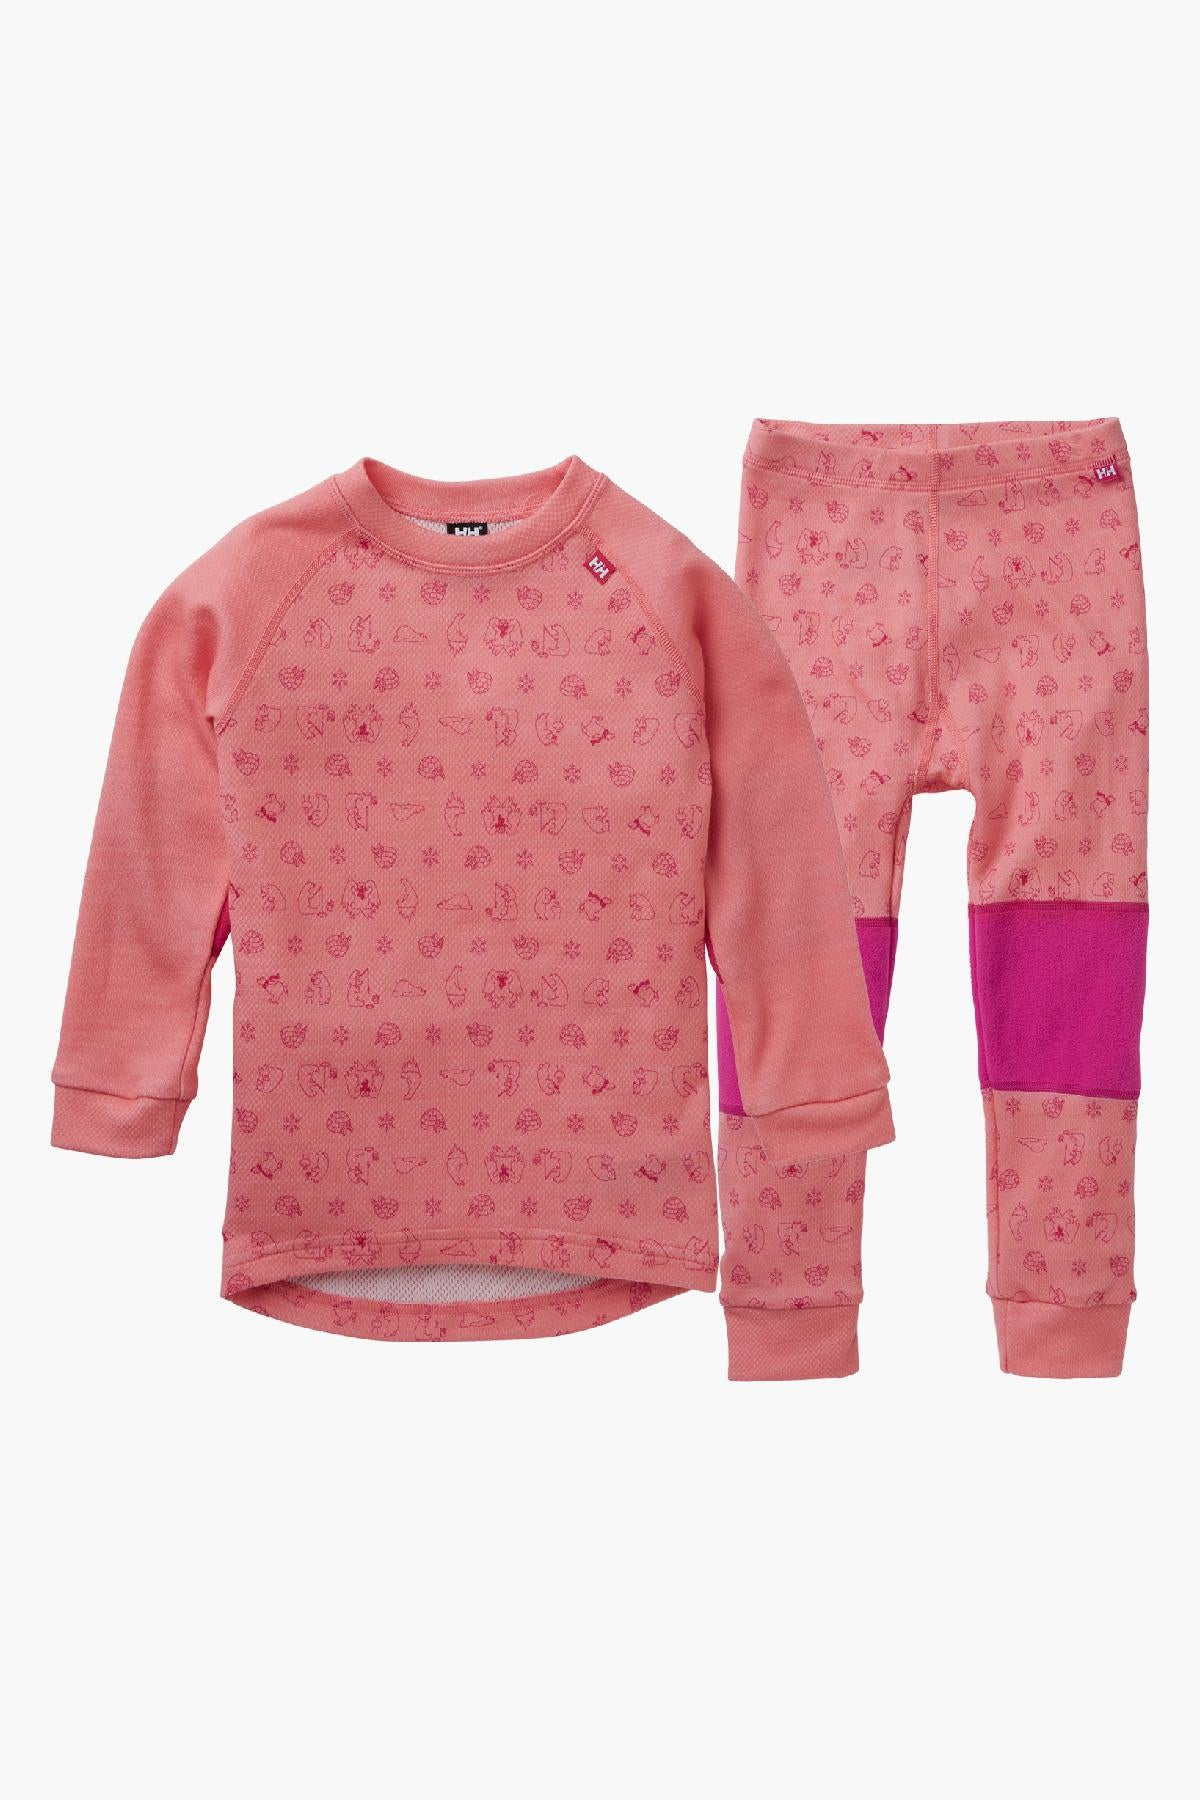 Helly Hansen Lifa Merino Girls Baselayer Set - Conch Shell